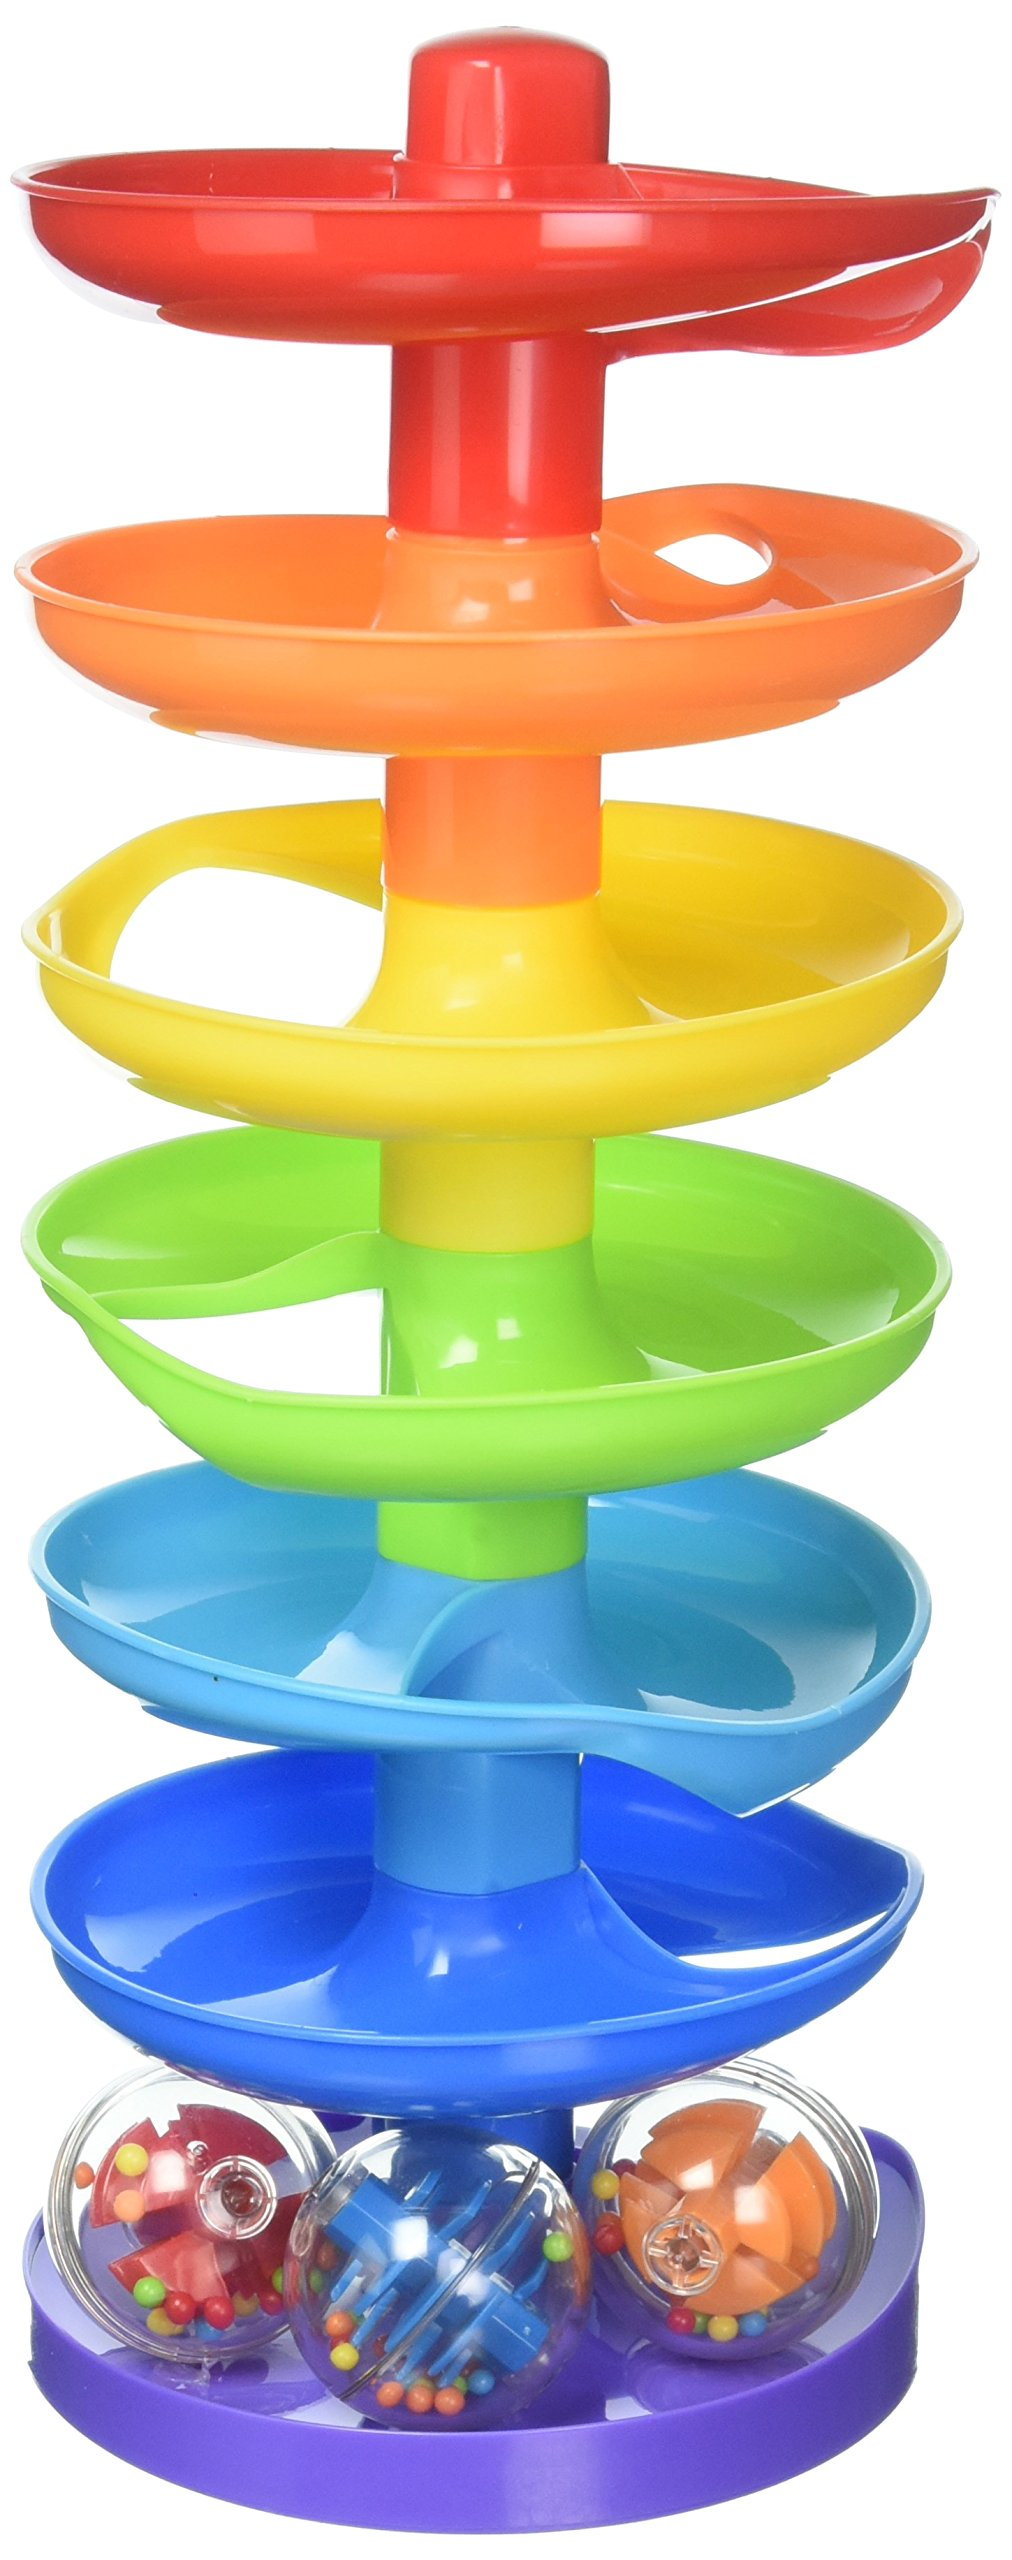 KidSource Super Spiral Tower - Ball Drop and Roll Activity Toy - Seven Colorful Ramps and Three Rattling Balls Promote Fine Motor Skills for Kids Ages 1 Year Old and Up